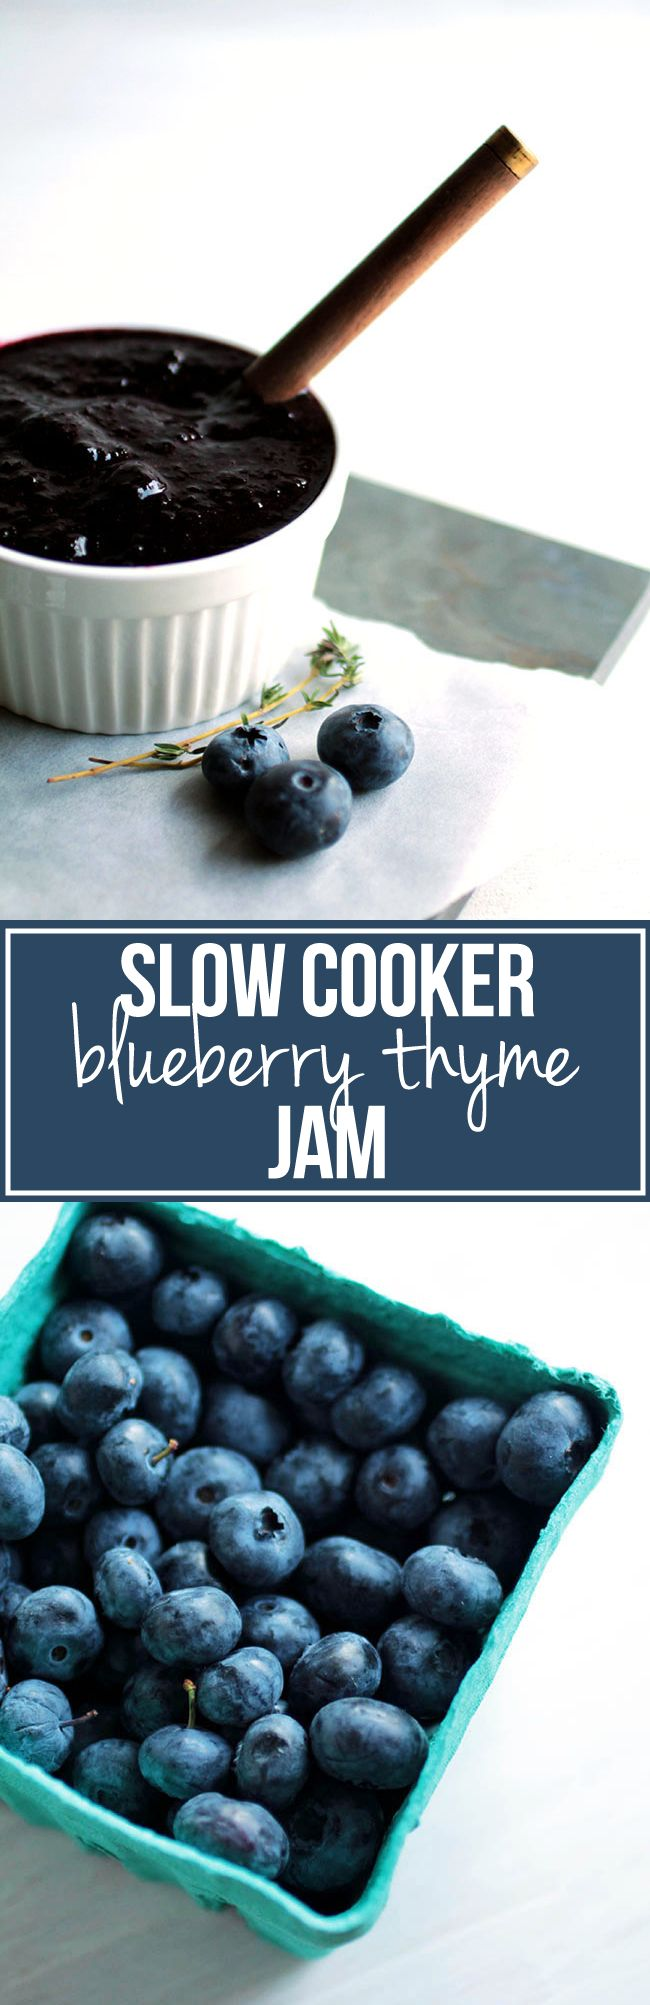 Slow Cooker Blueberry Thyme Jam